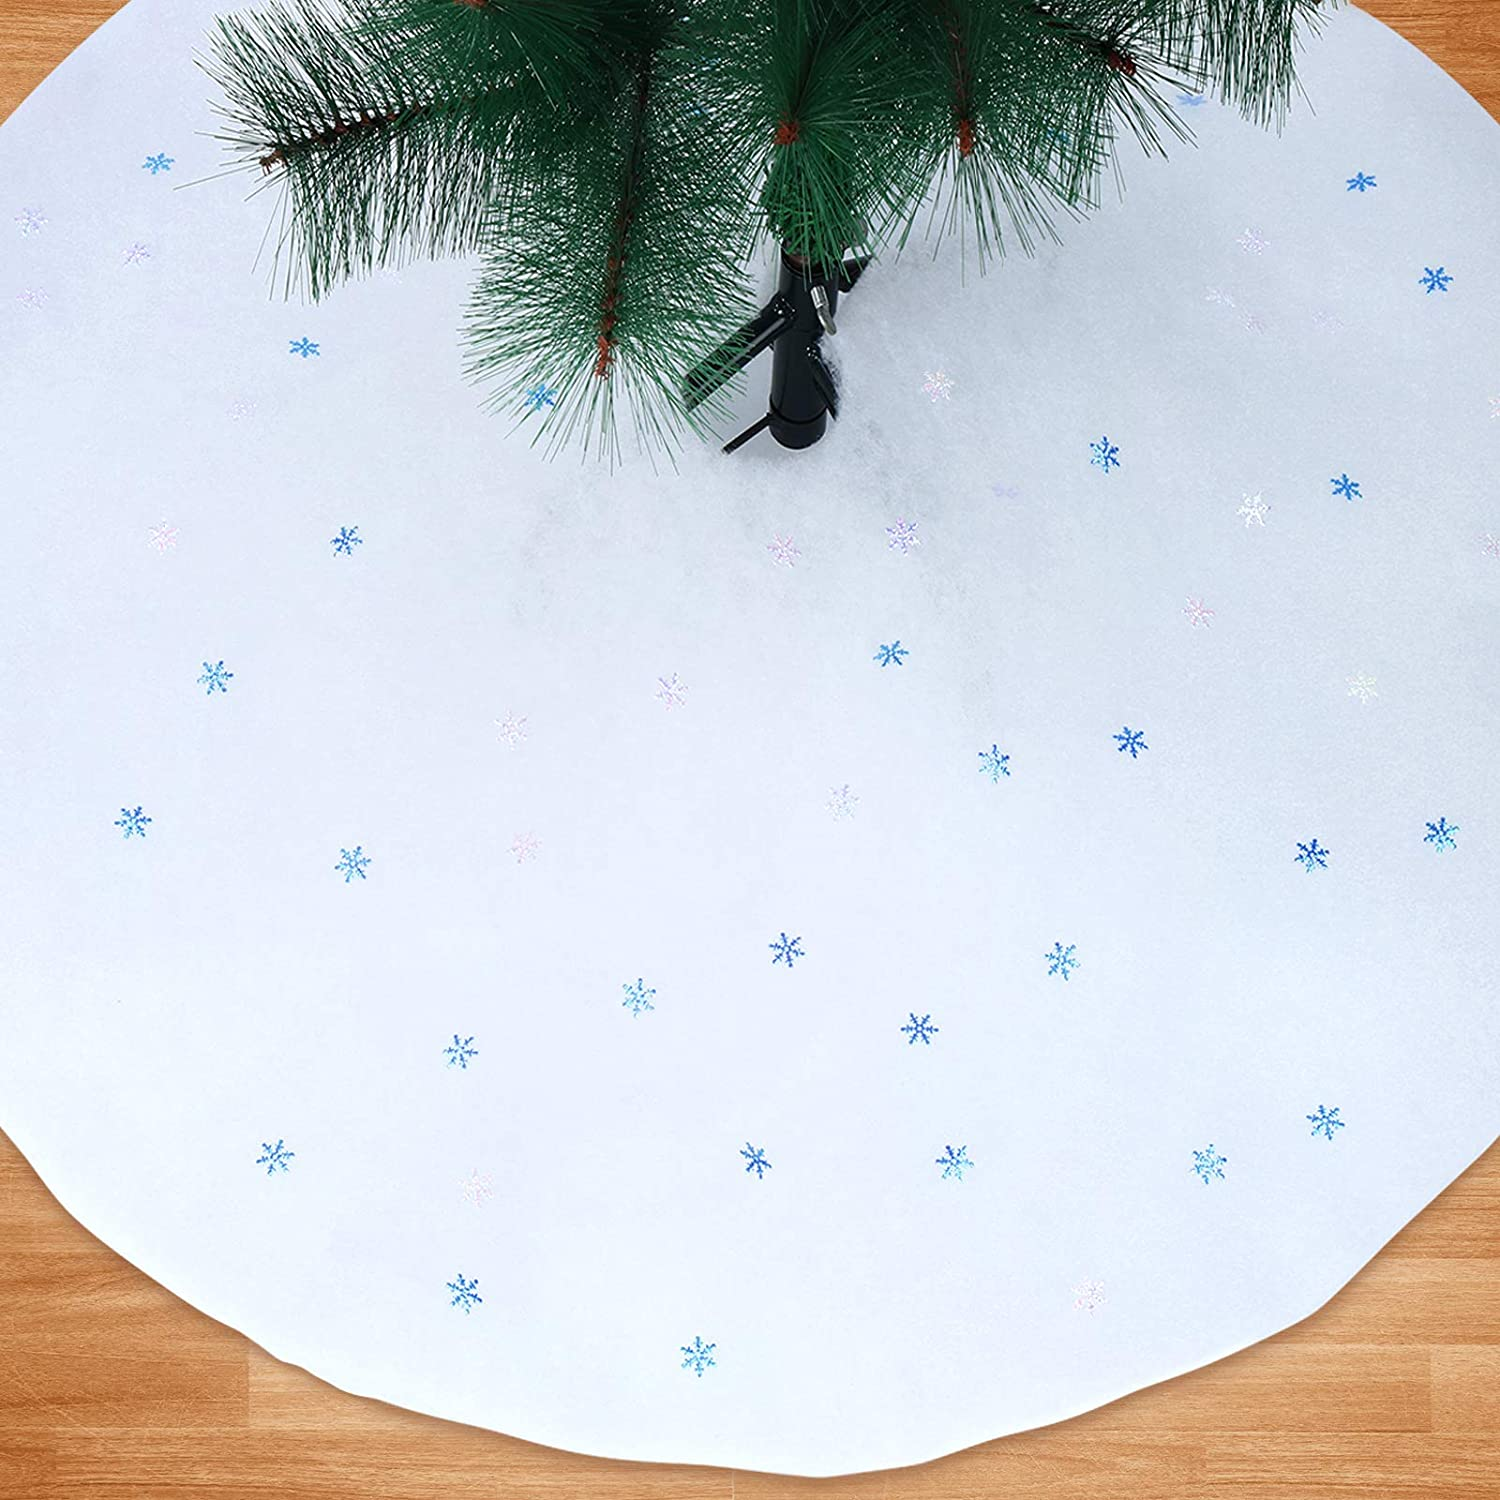 Cholung Christmas Tree Skirts Soft White Tree Skirt and 500 Pieces Christmas Snowflakes Confetti Frozen Snowflake Scatter for Christmas Tree Decorations Holiday Party Indoor Outdoor Decoration